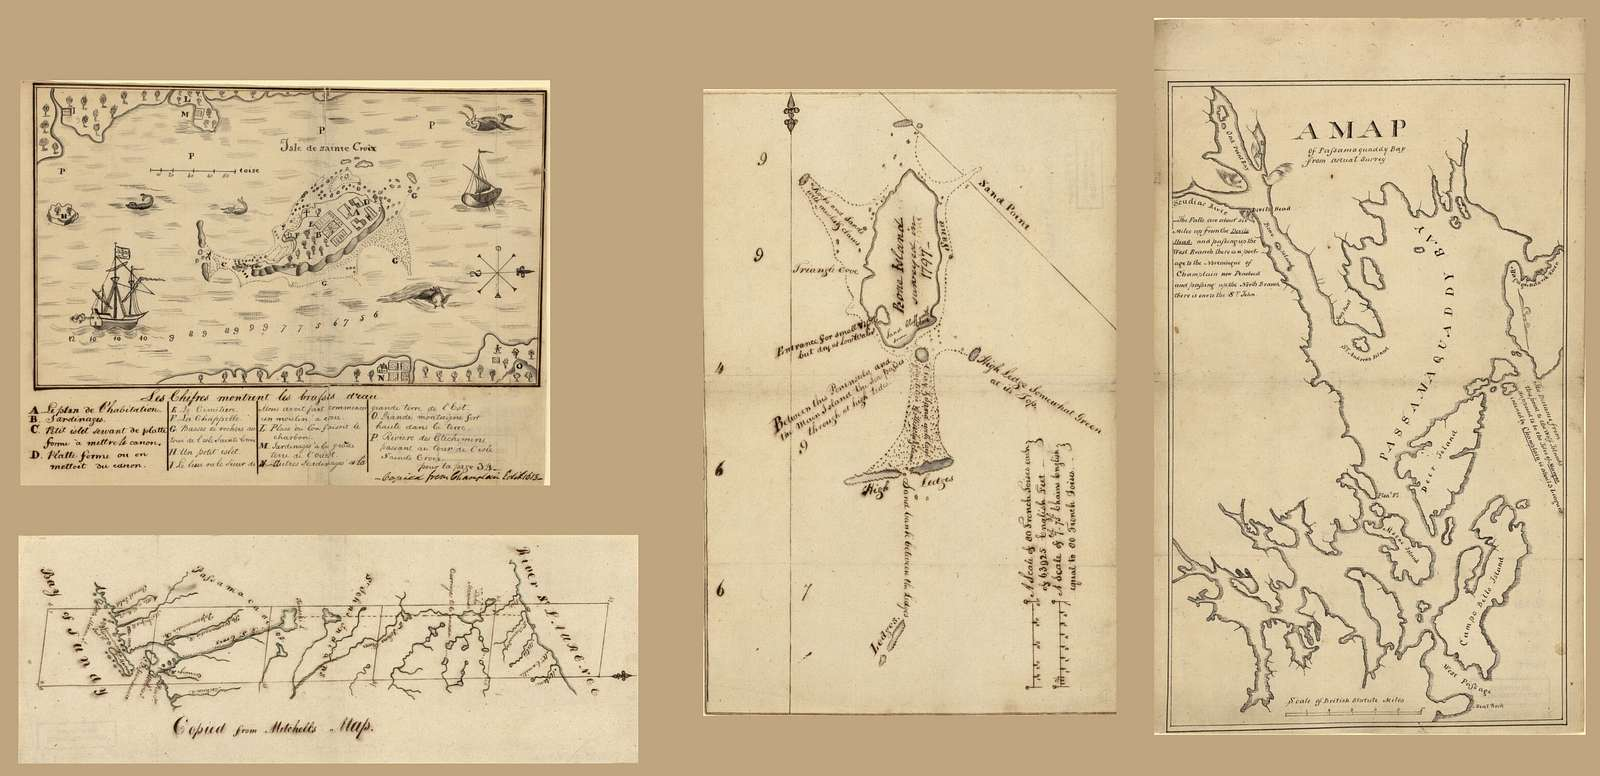 [Manuscript maps that were assembled by Egbert Benson and sent in 1802 to Rufus King, United States minister to Great Britain, in order to facilitate negotiations over disputed international boundary between Maine and New Brunswick].